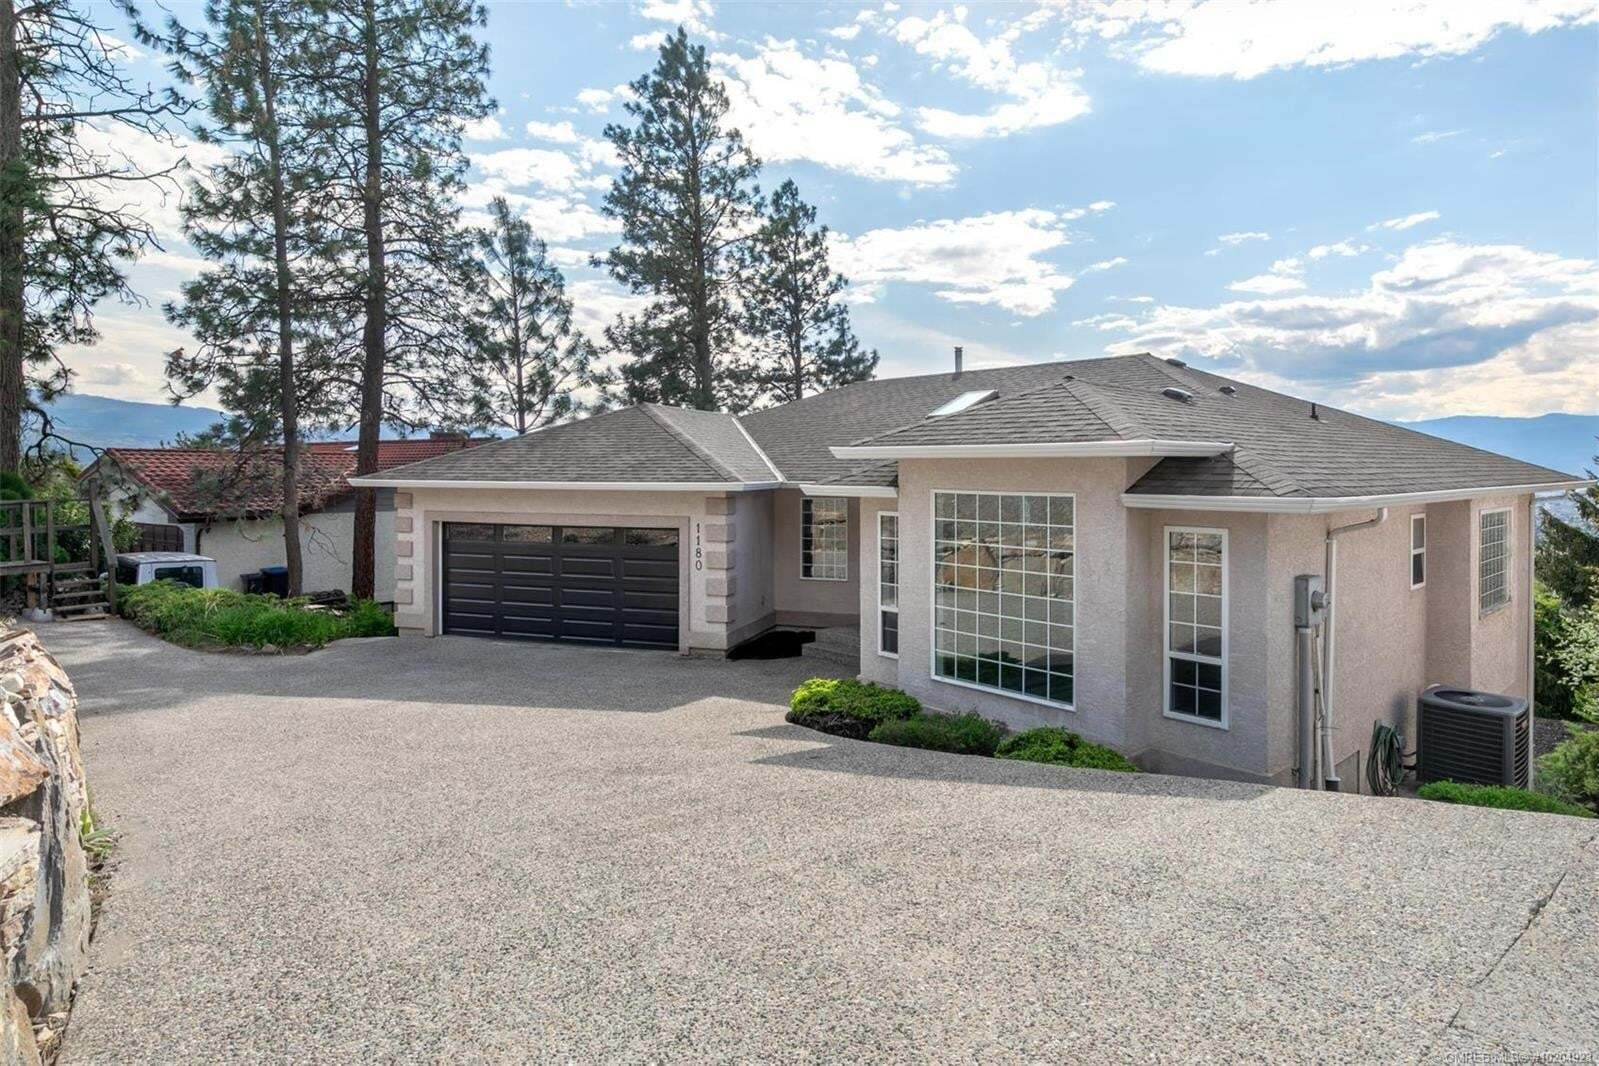 House for sale at 1180 Ray Rd Kelowna British Columbia - MLS: 10204923